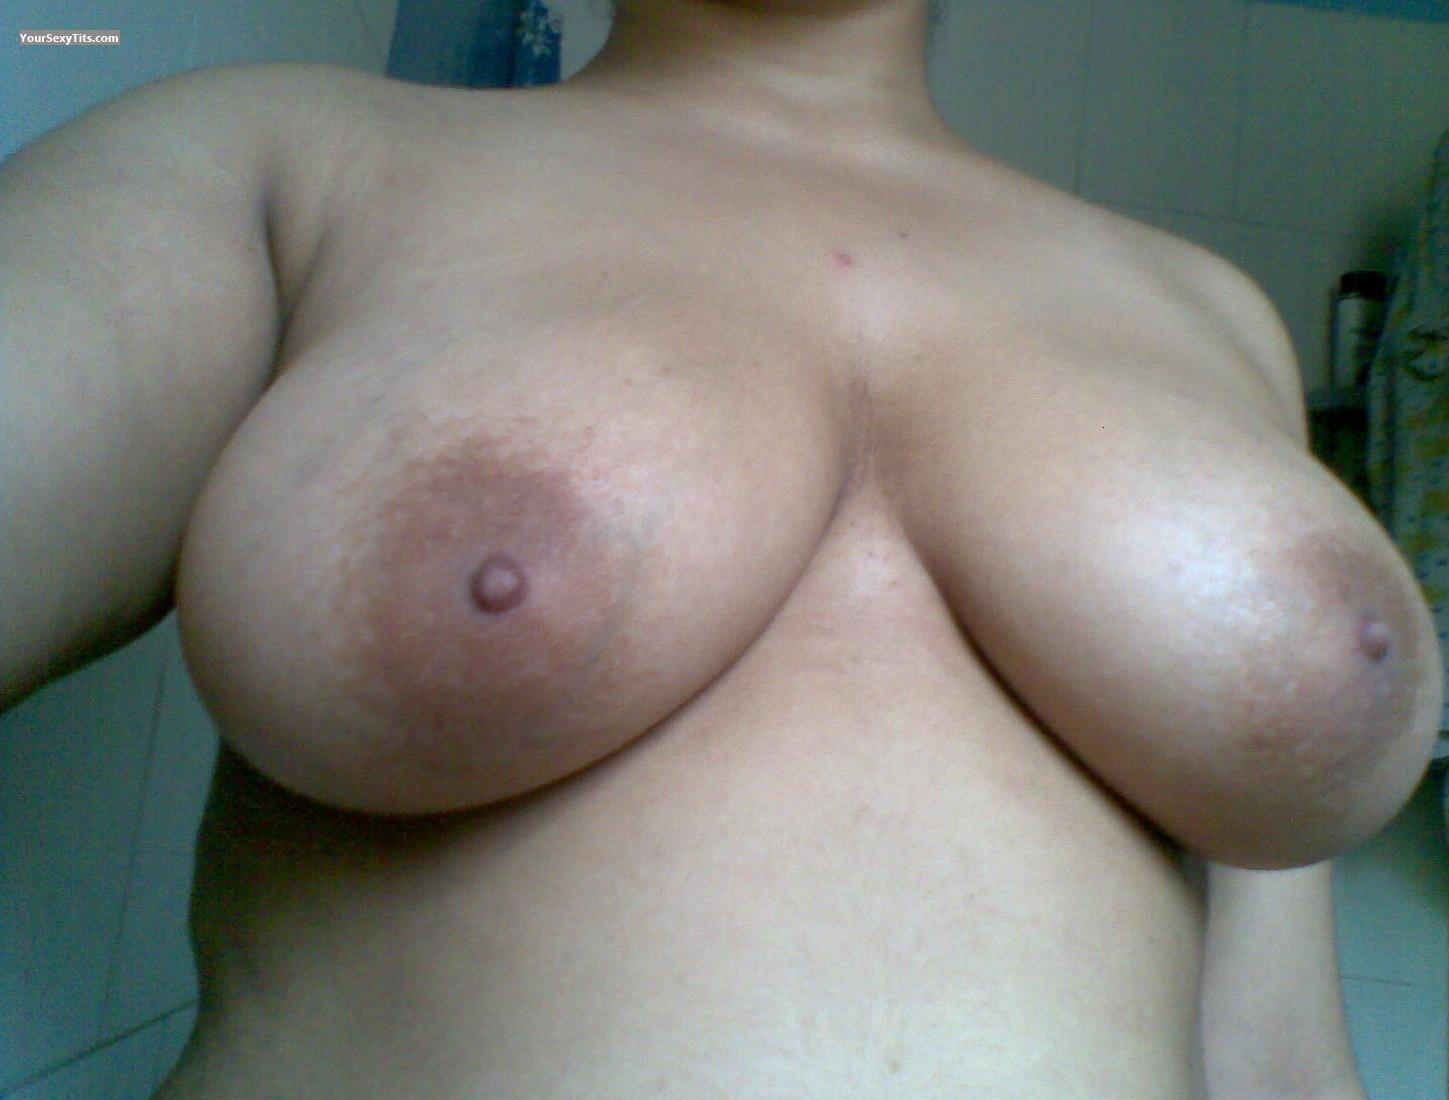 Tit Flash: Big Tits - Debby from United States